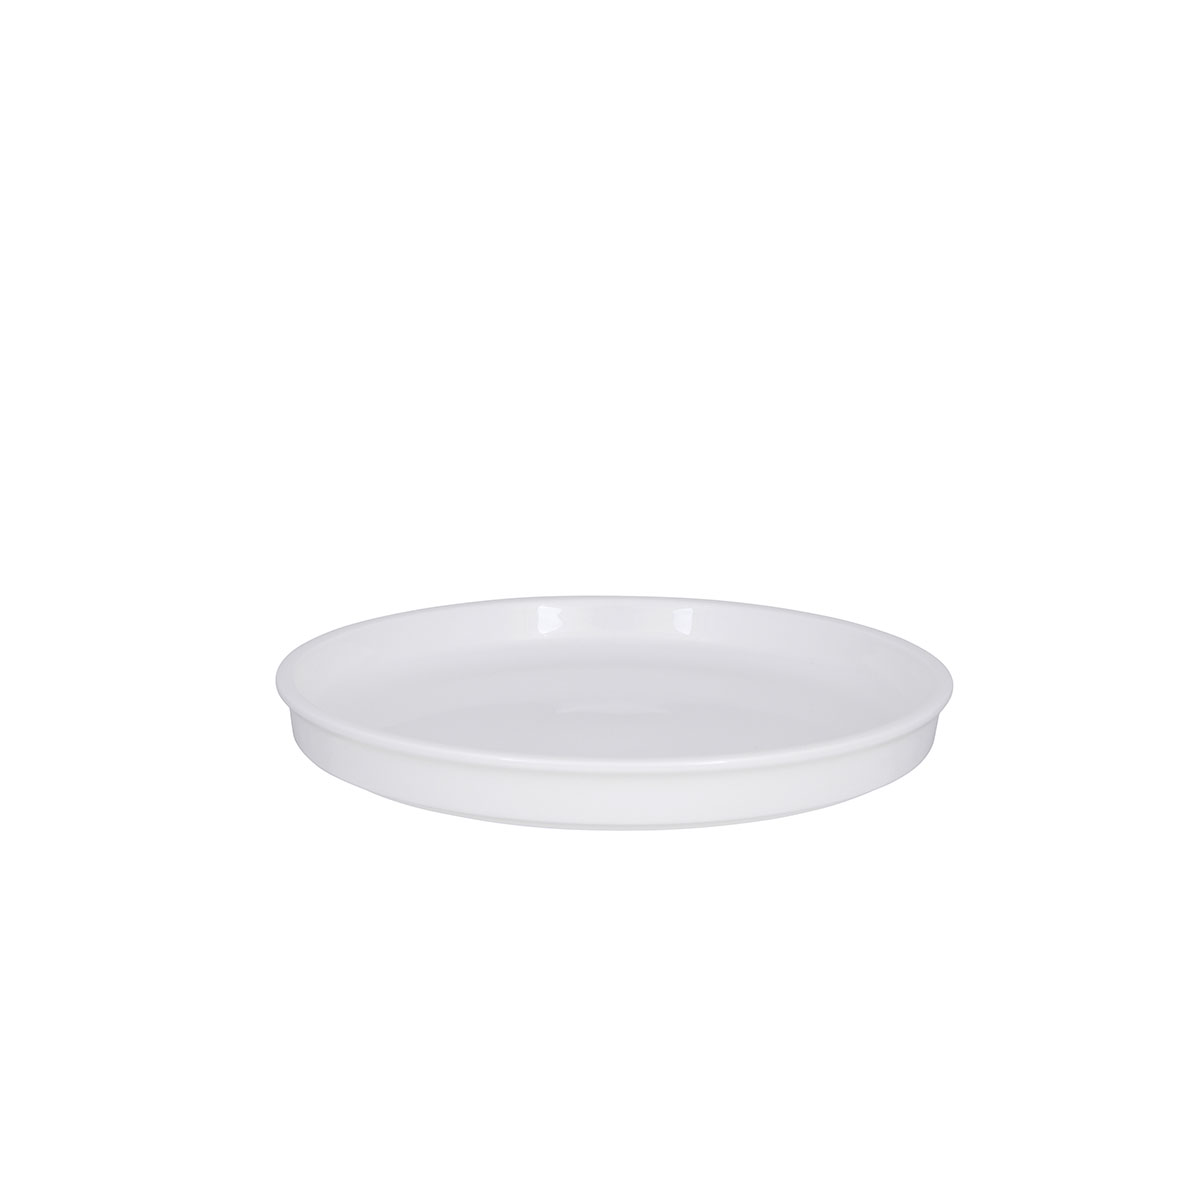 Clever Cooking Serv.dish/ Round Cov.26cm